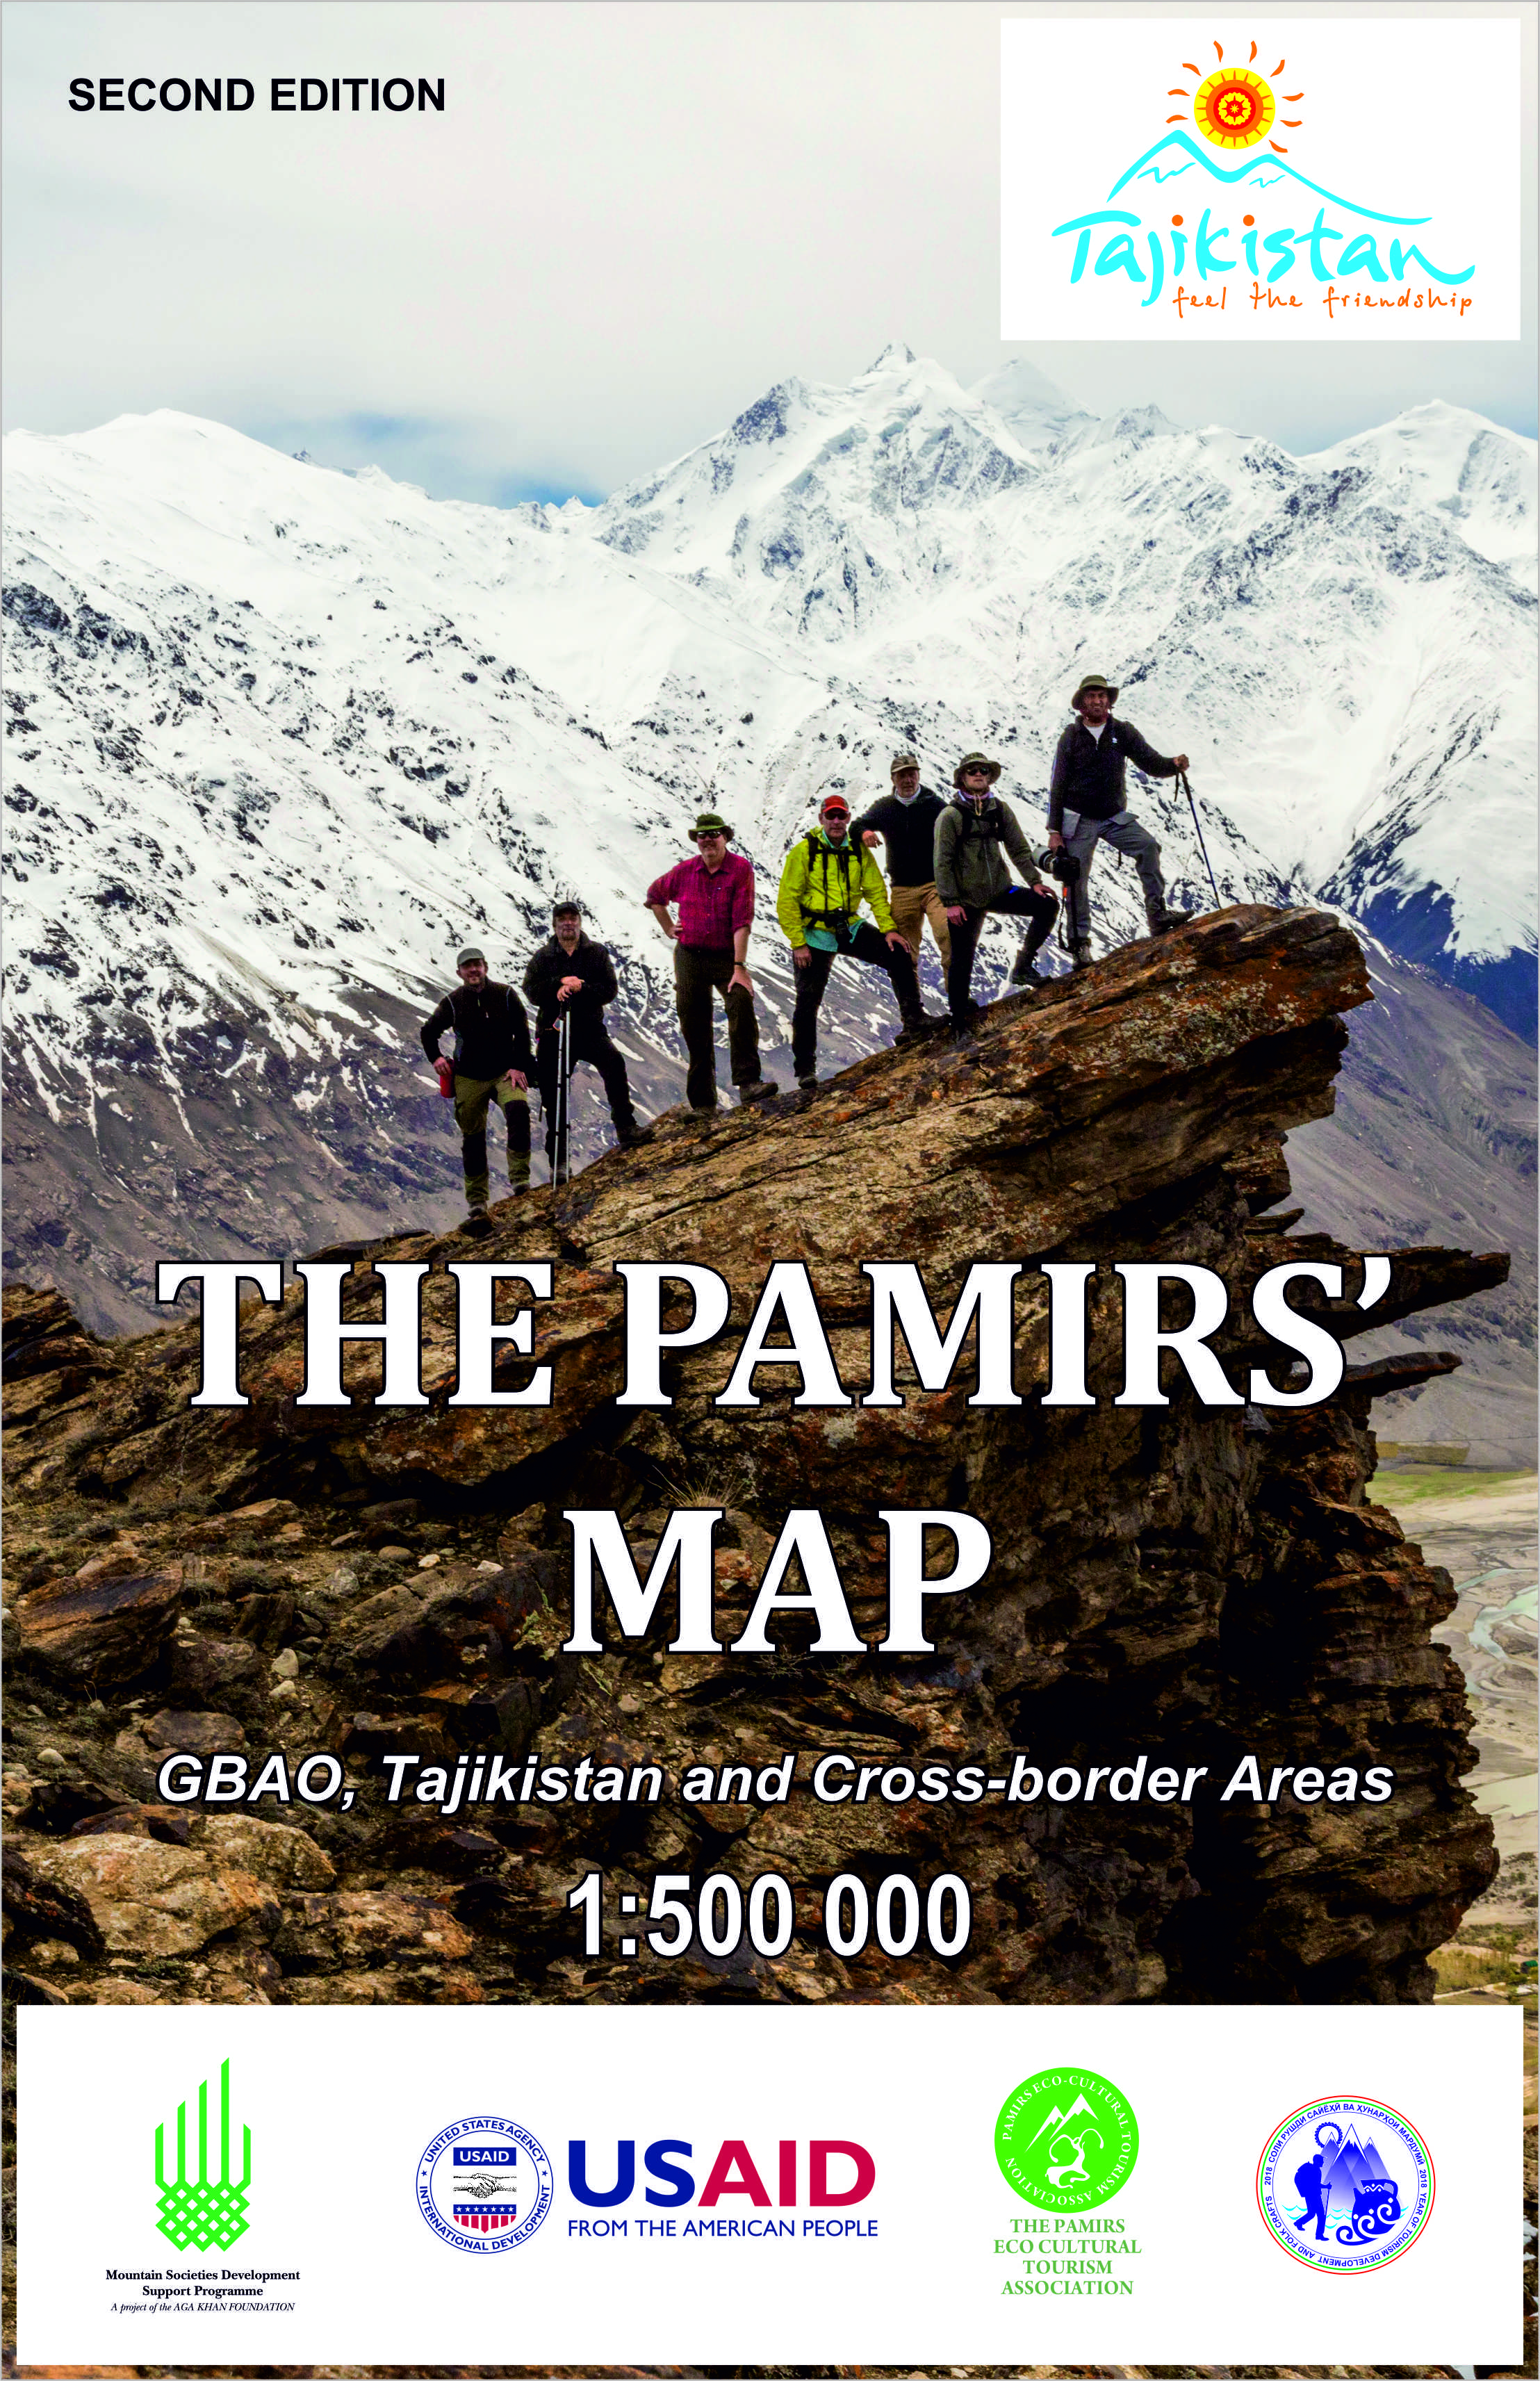 The Pamirs' Map is available in the PECTA Tourism office in Khorog